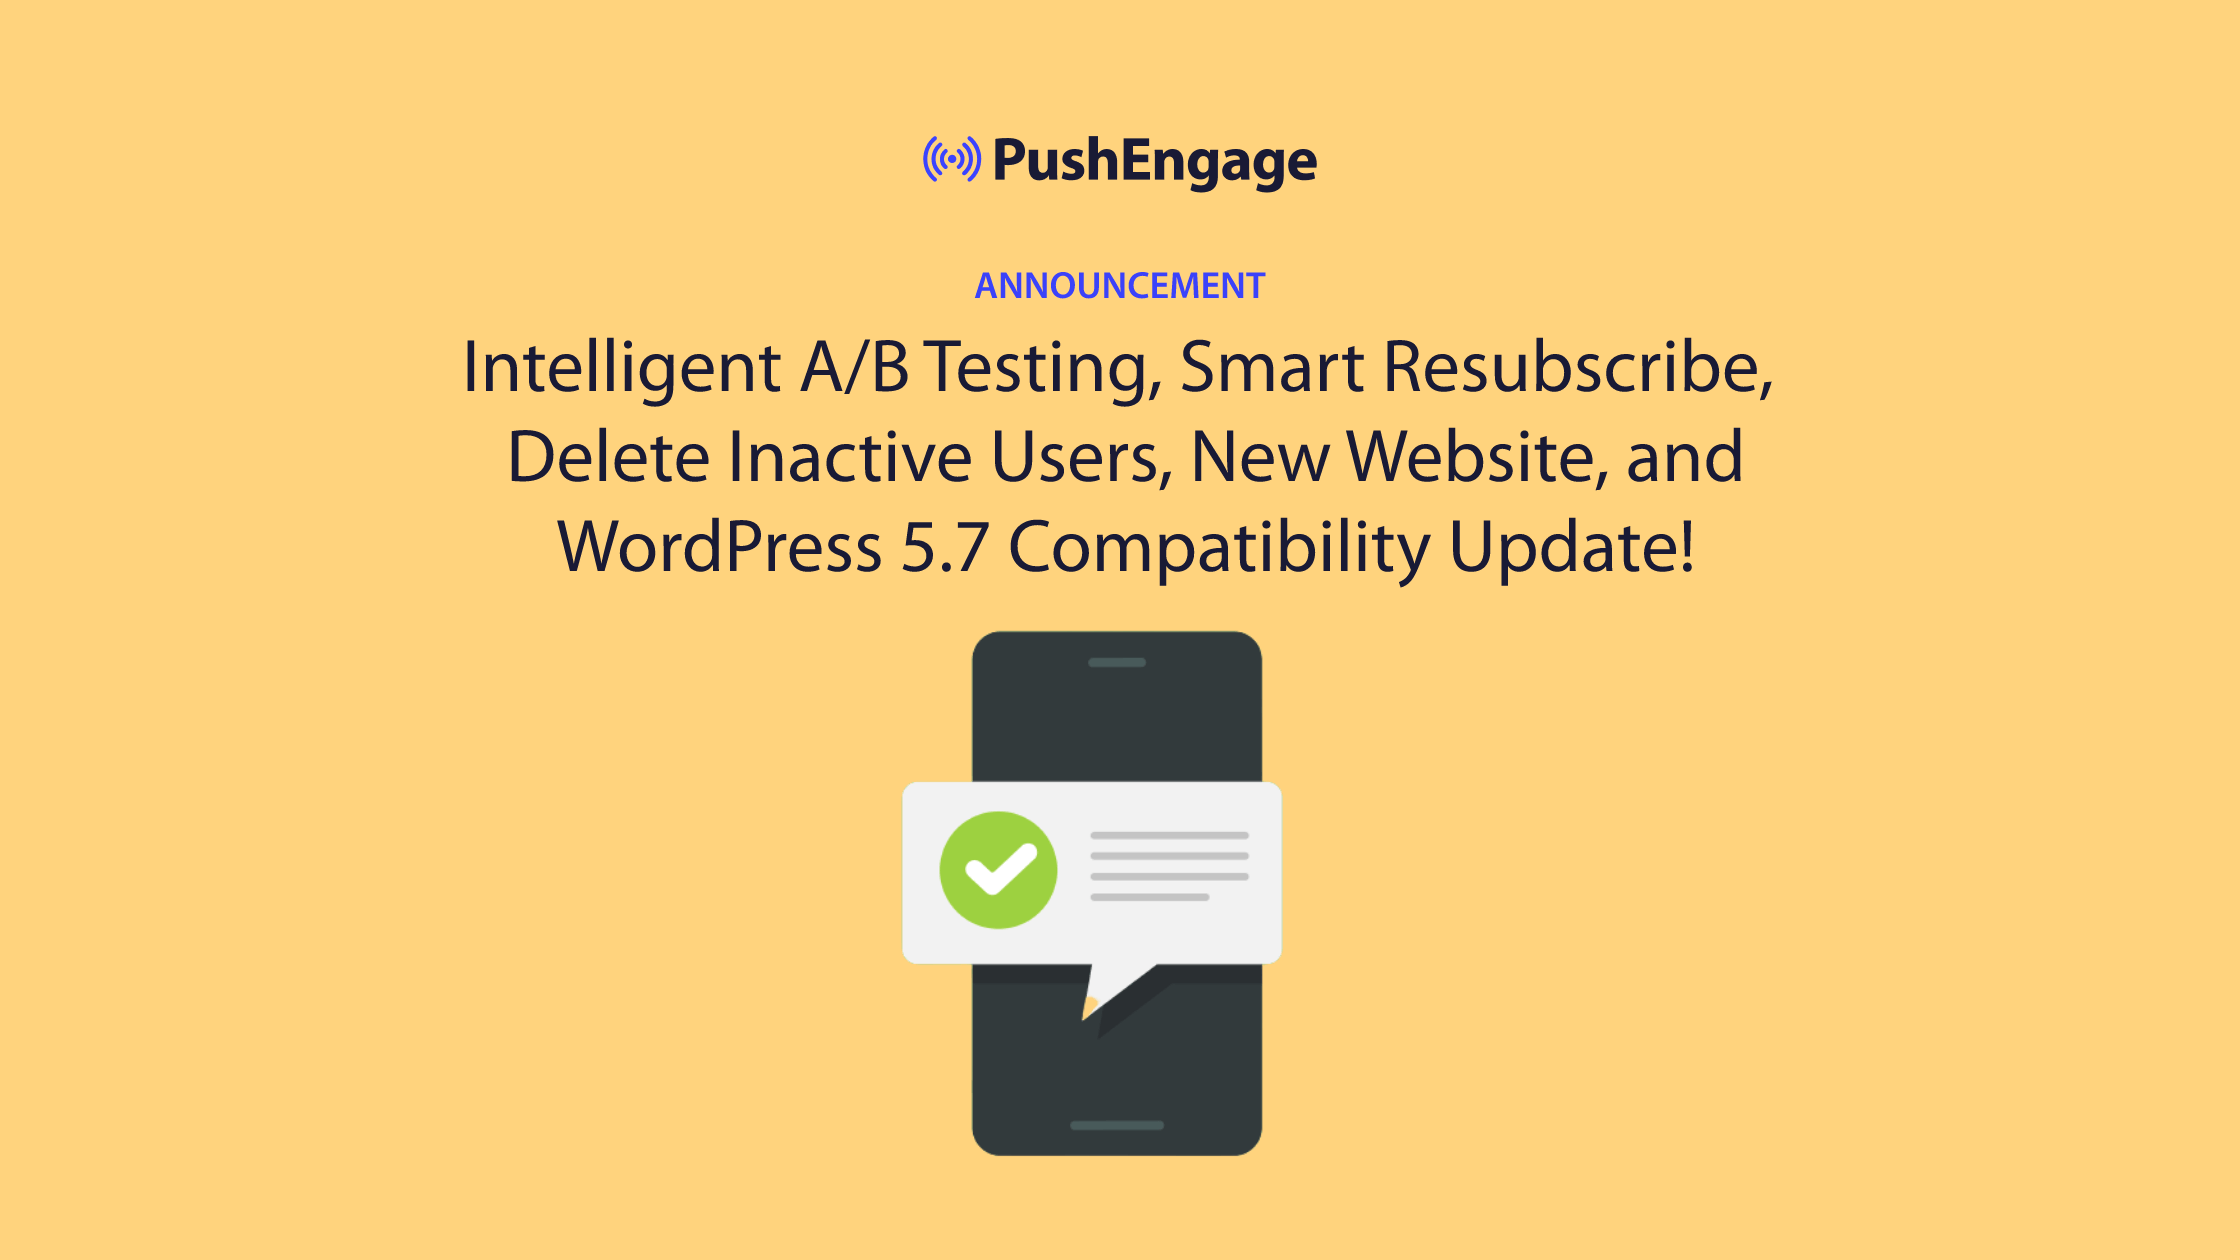 [Announcement] – Intelligent A/B Testing, Smart Resubscribe, and More!